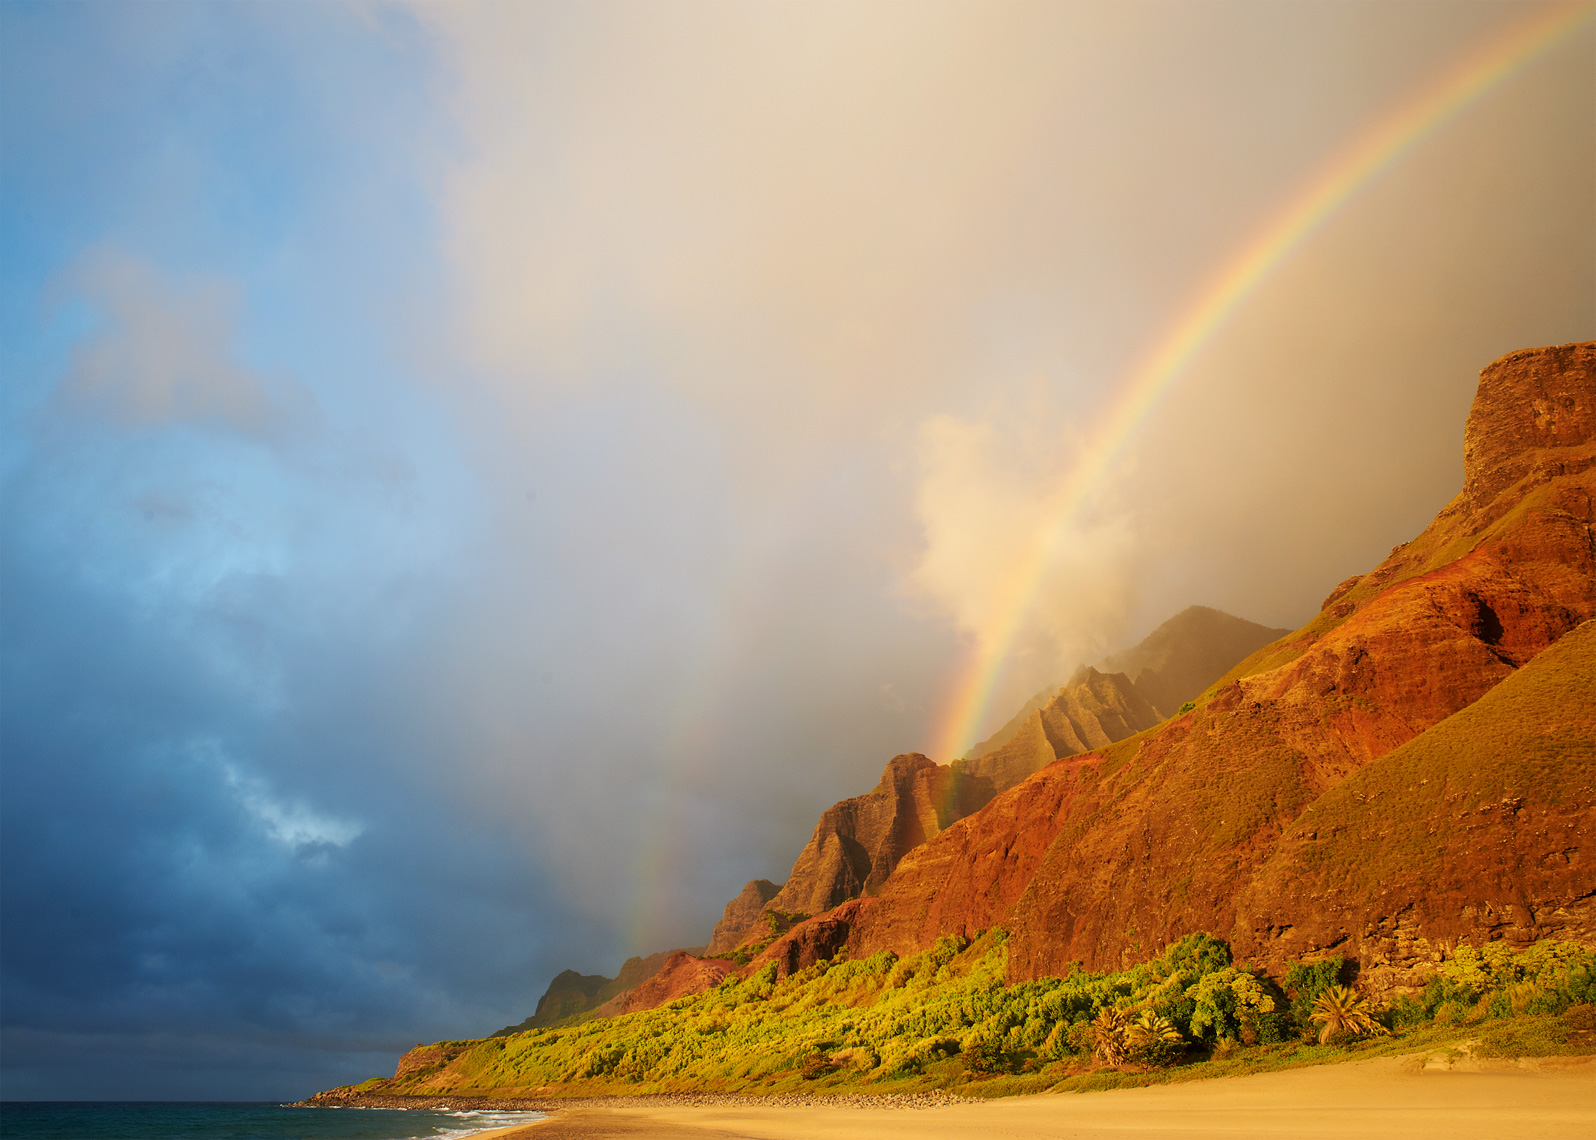 Double Hawaiian rainbow